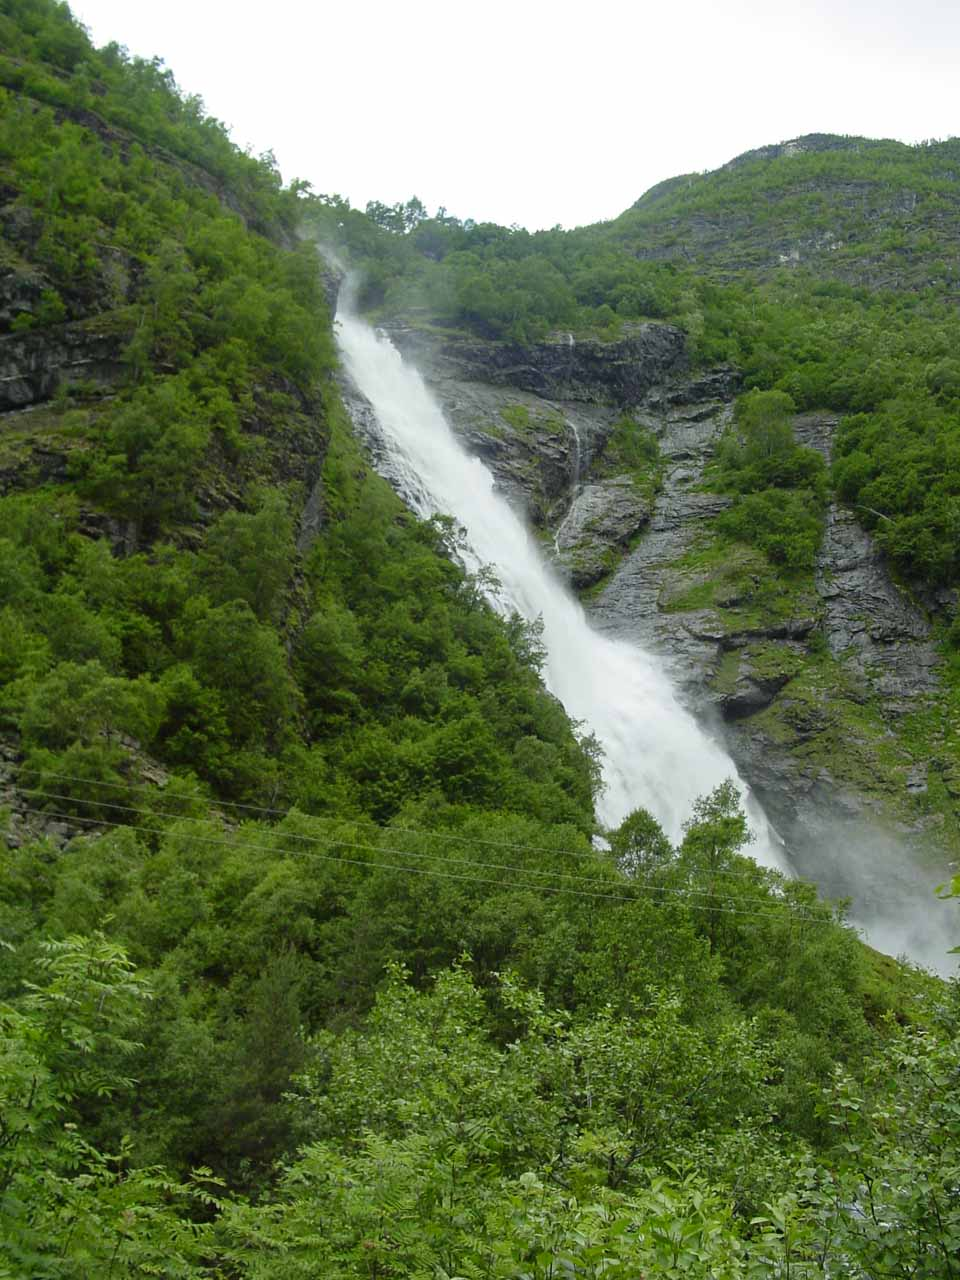 Finally, Avdalsfossen started coming into view about 15 minutes into the hike